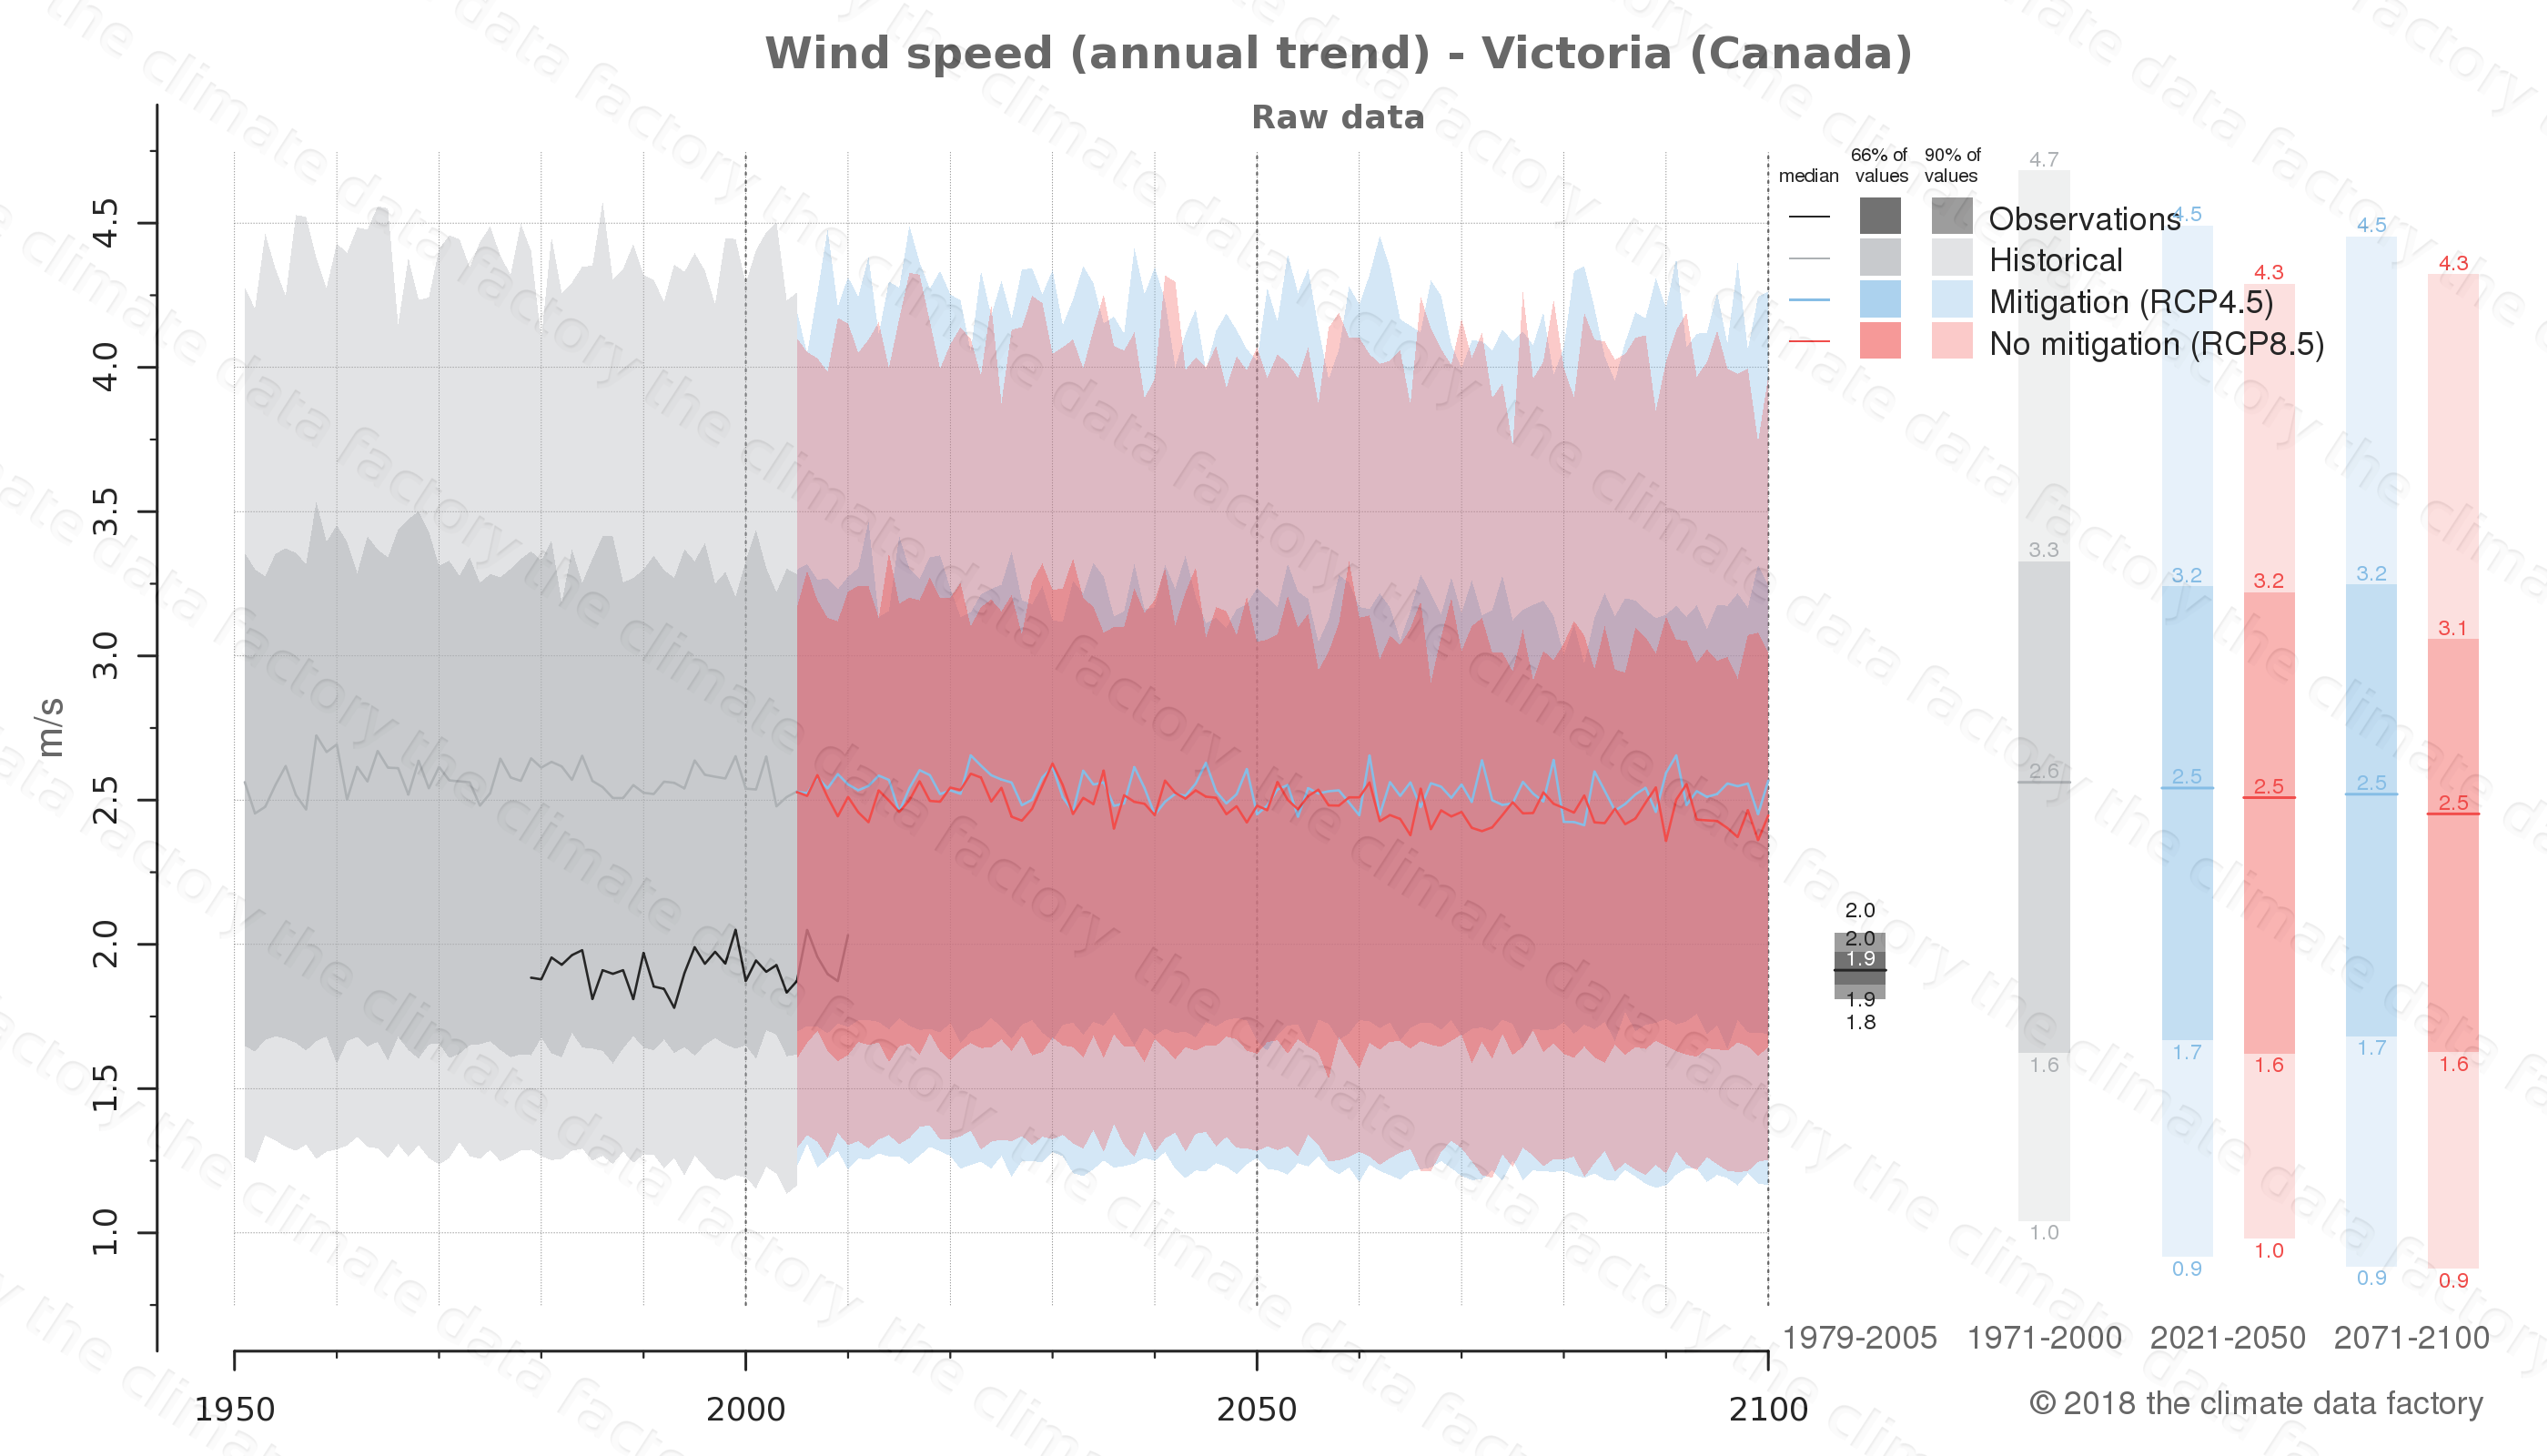 climate change data policy adaptation climate graph city data wind-speed victoria canada